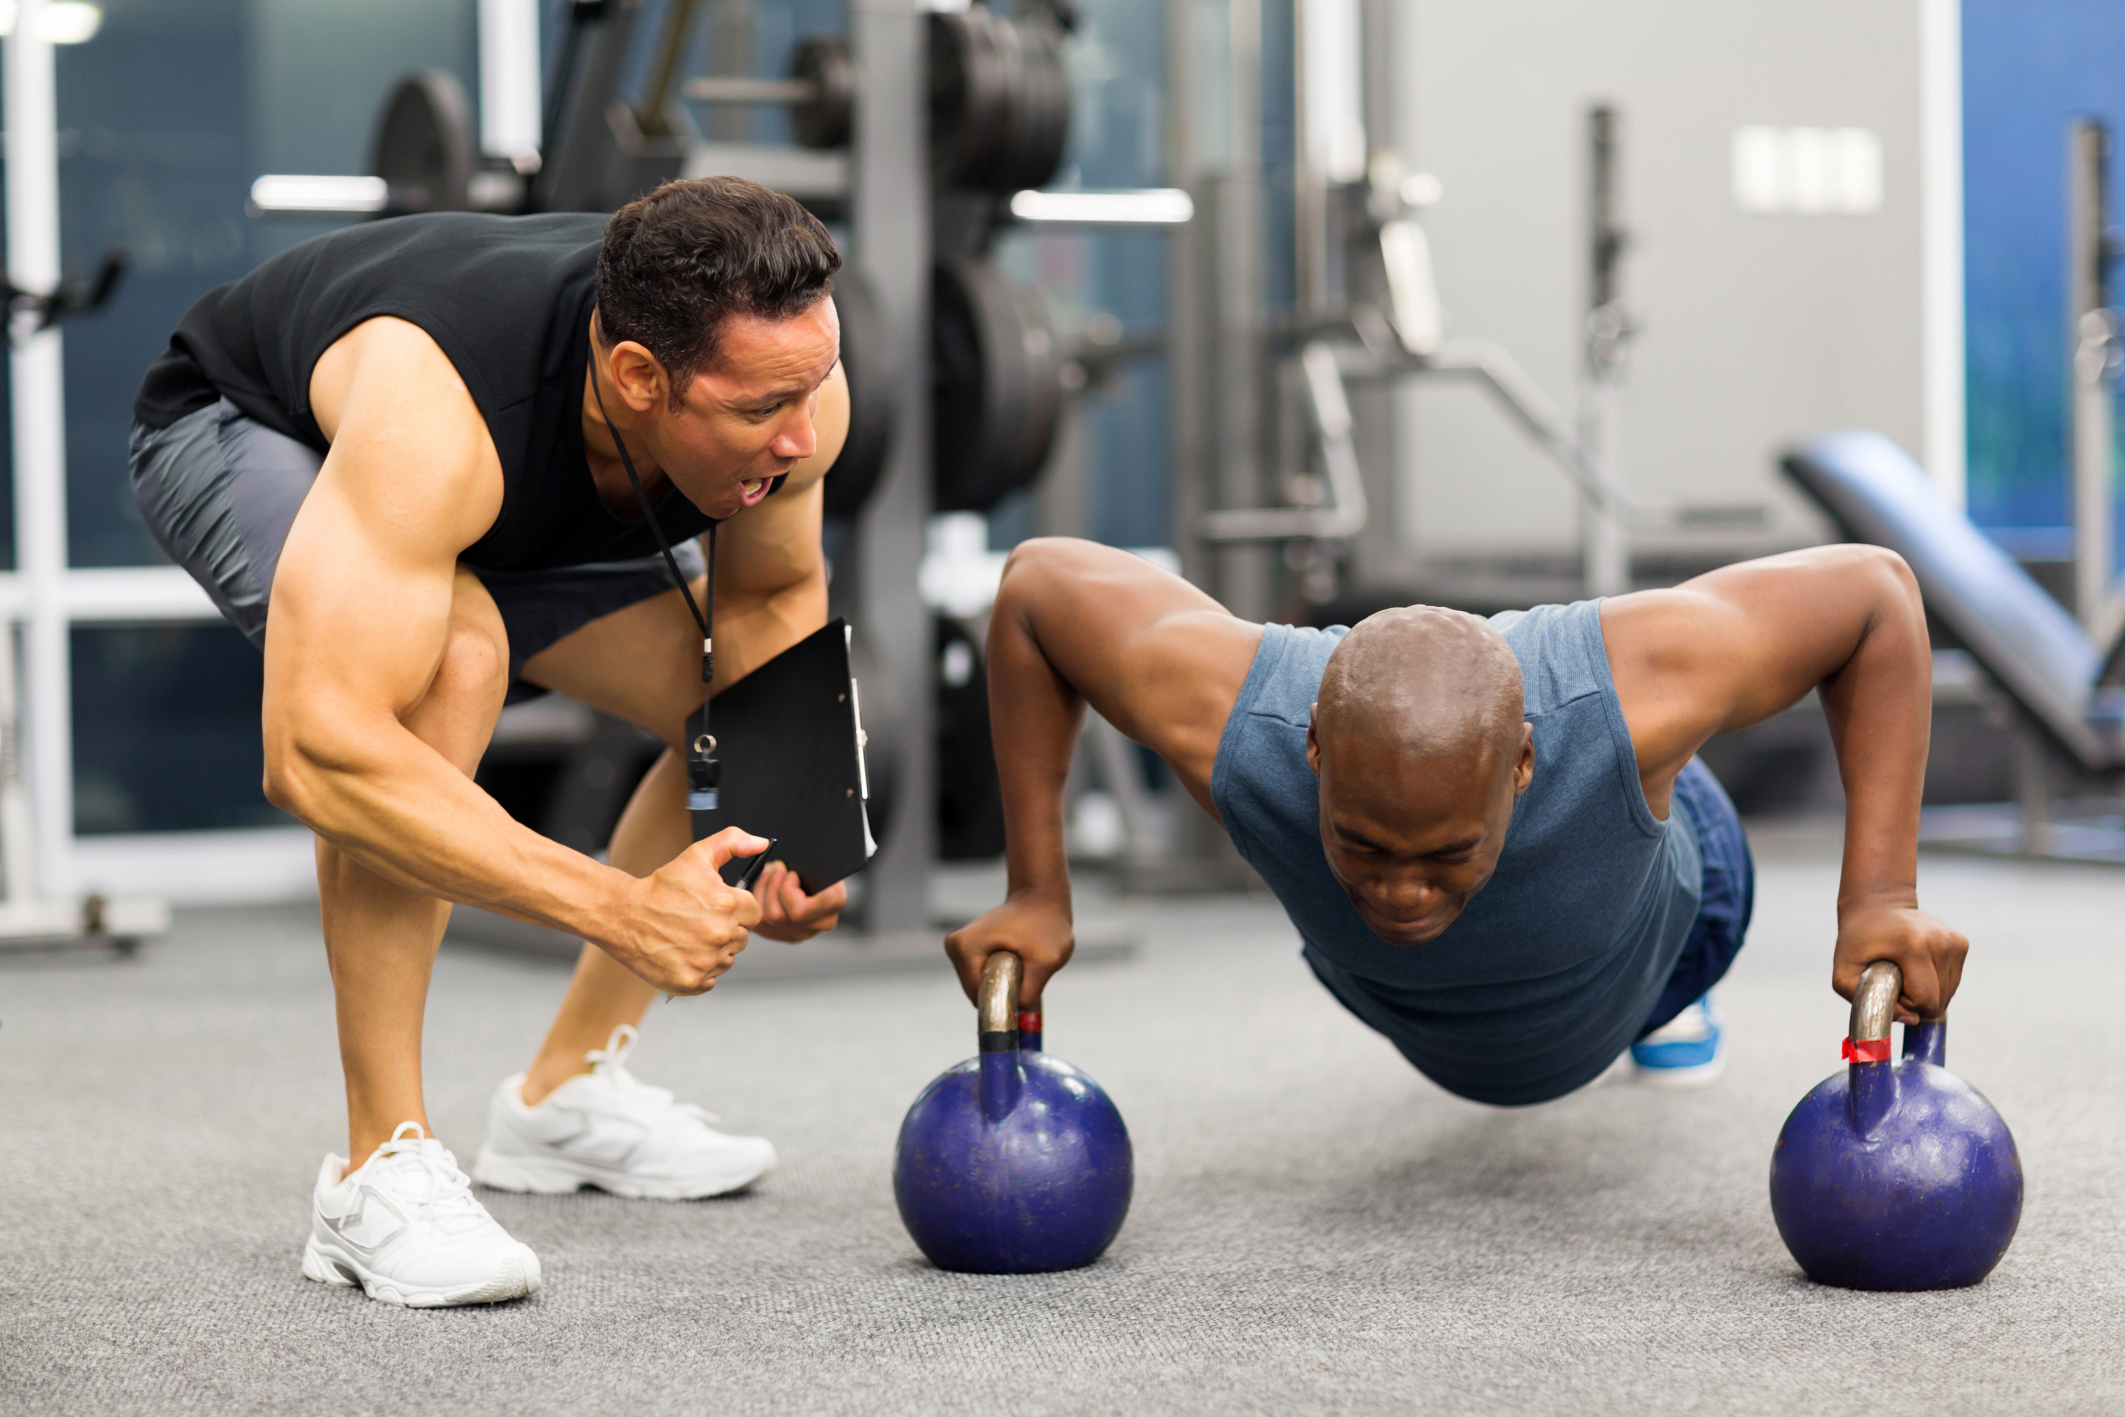 What Are Full-Body Workout Benefits?